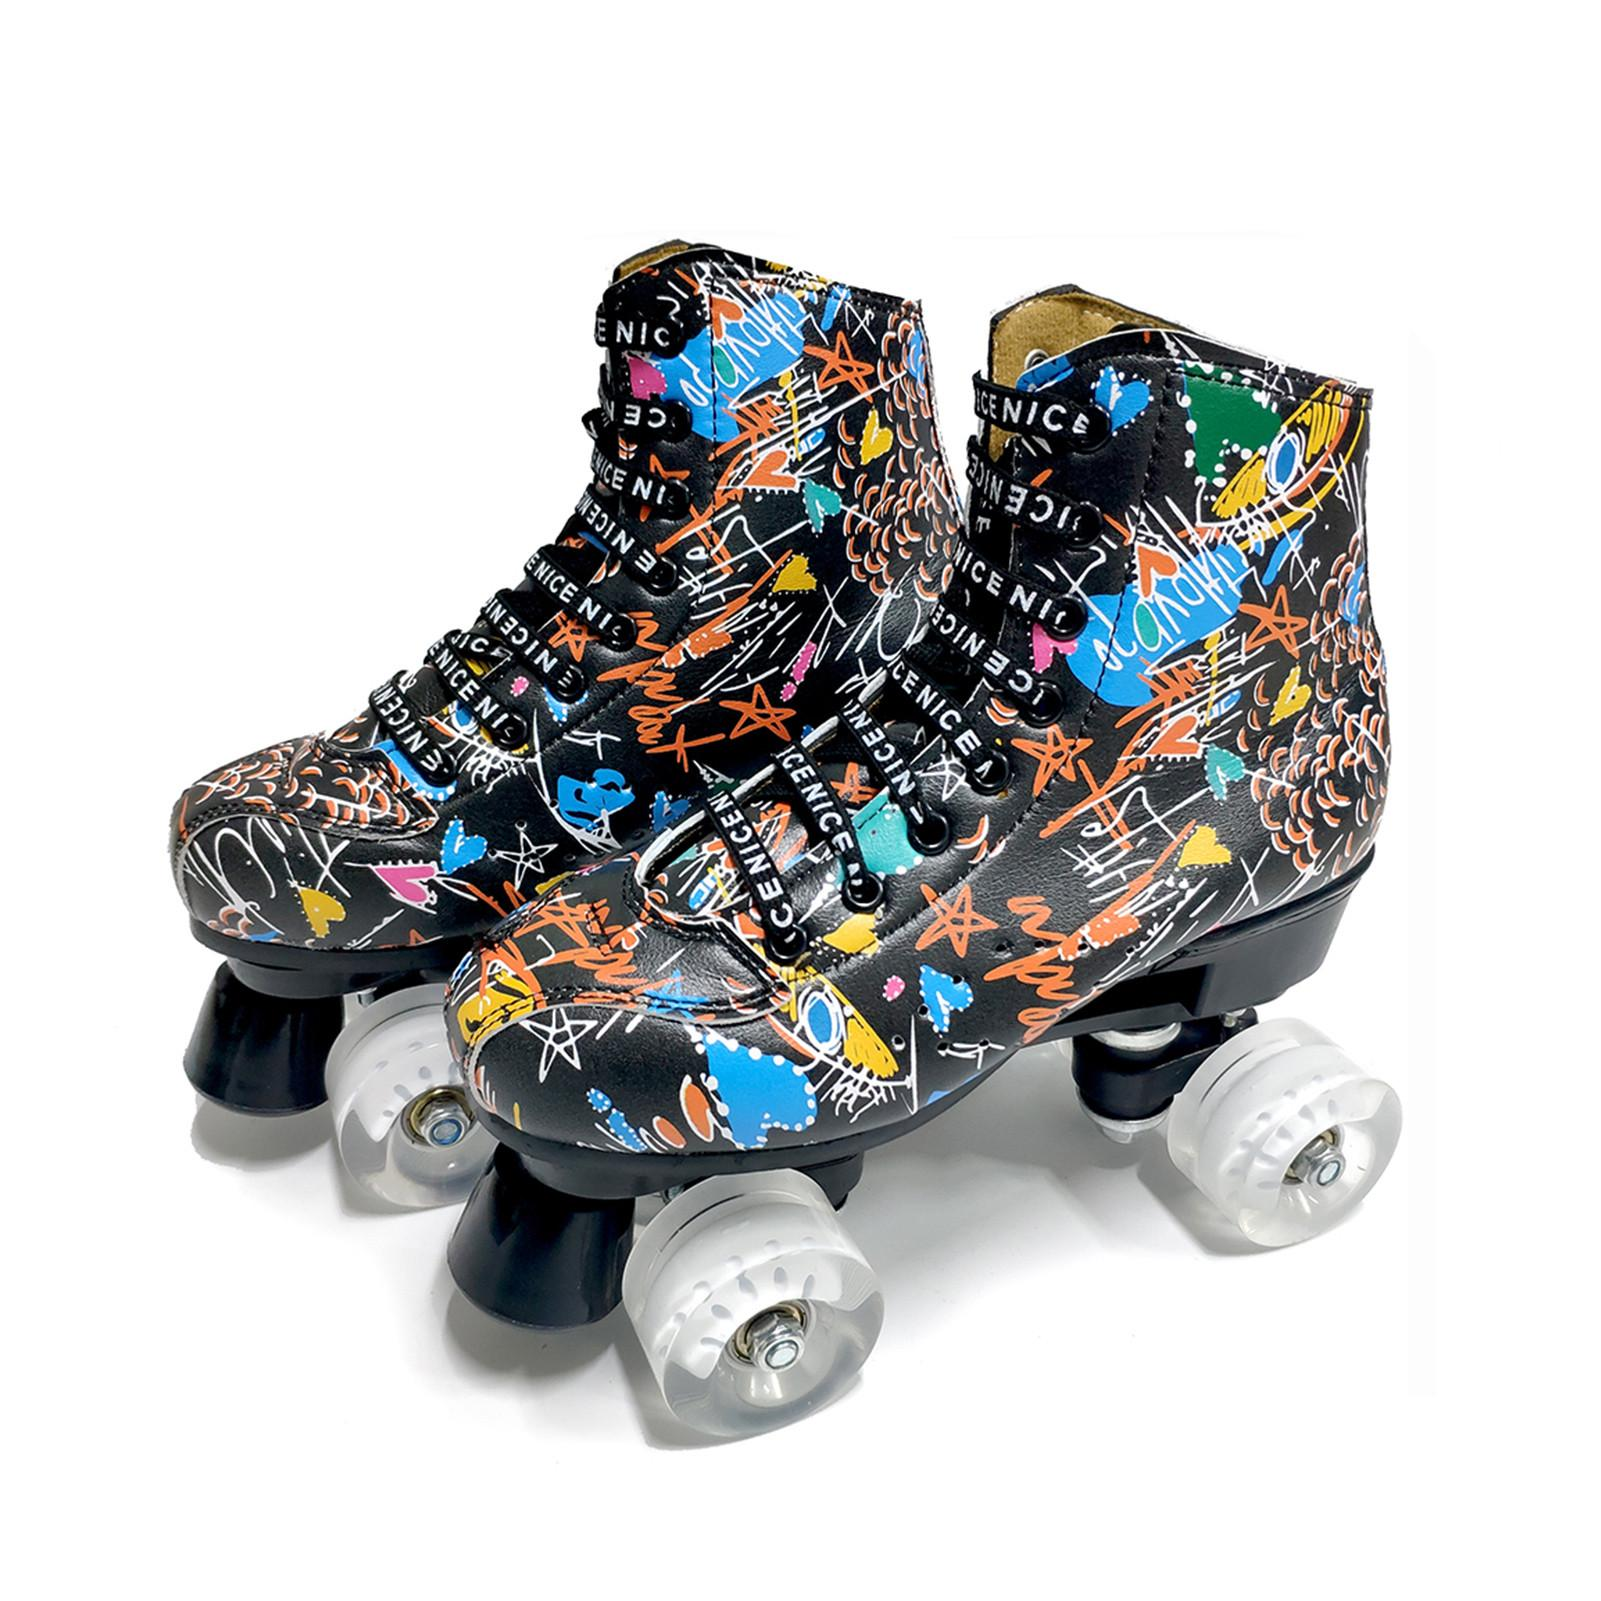 skating shoes